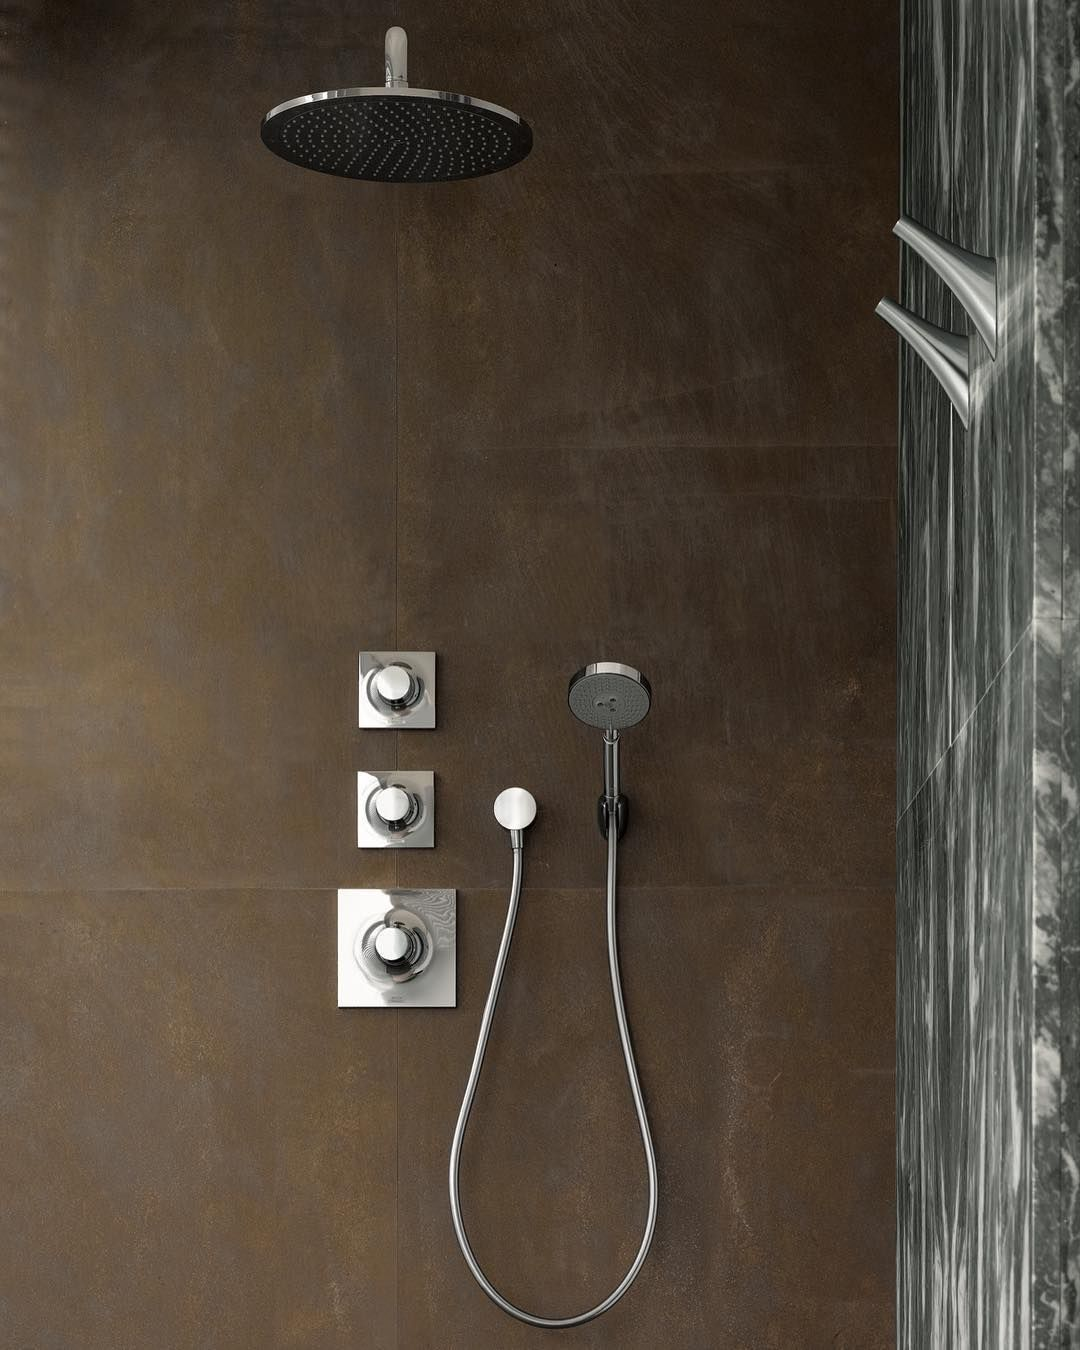 AXOR Massaud shower solution - raw and elegant.  #AXOR #AXORnordic #Massaud #design #interior #interiordesign #bathroom #bathroomdesign #bathroominspo #inspiremeinterior #interiorinspirasjon #inredning #sisustusinspiraatio